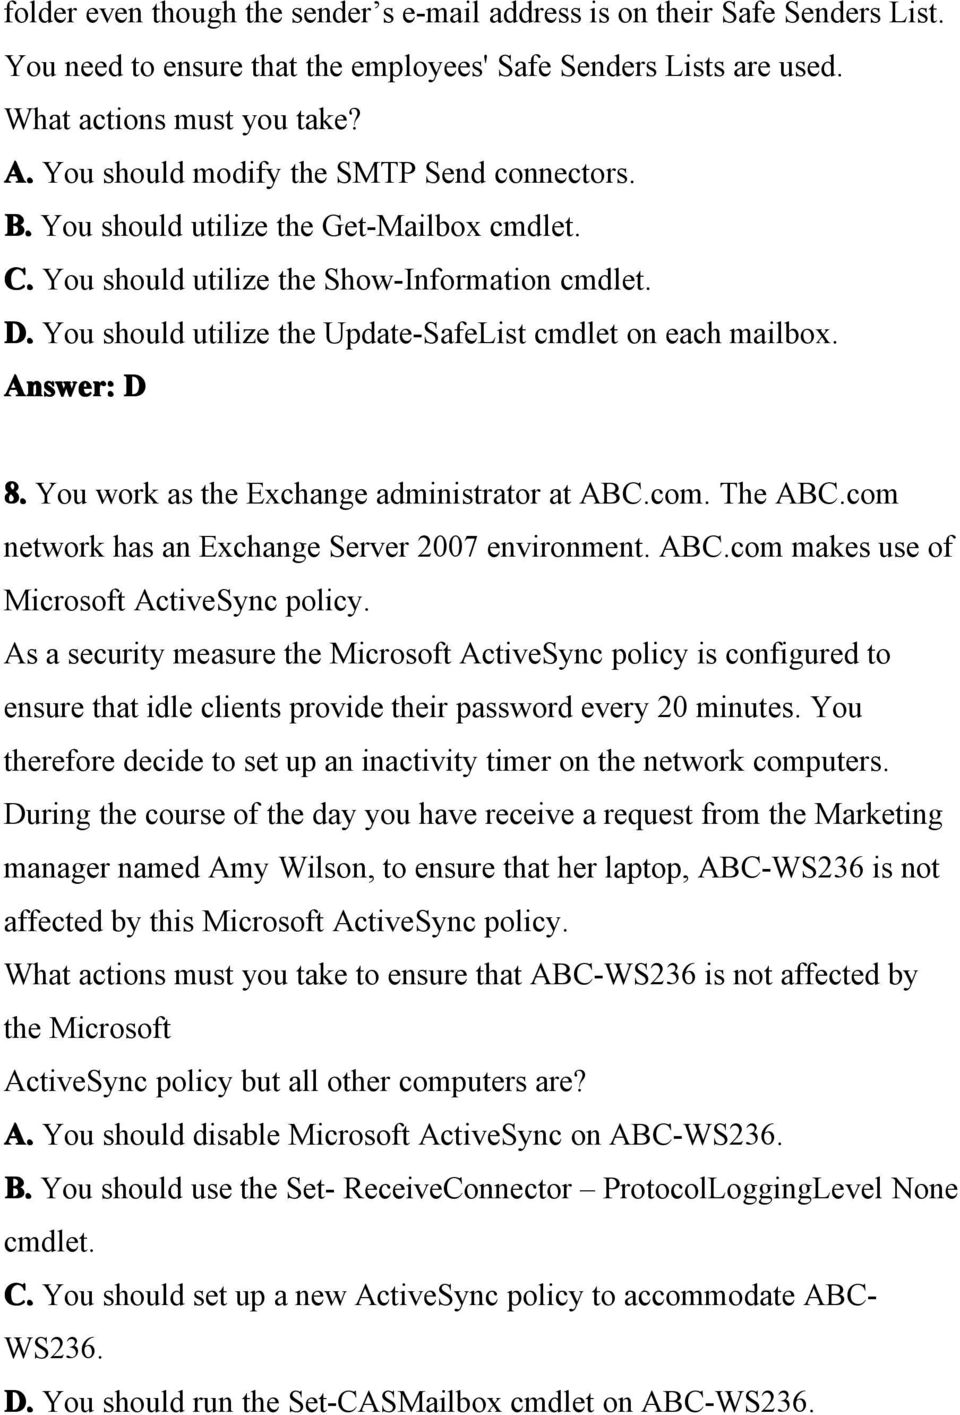 You work as the Exchange administrator at ABC.com. The ABC.com network has an Exchange Server 2007 environment. ABC.com makes use of Microsoft ActiveSync policy.